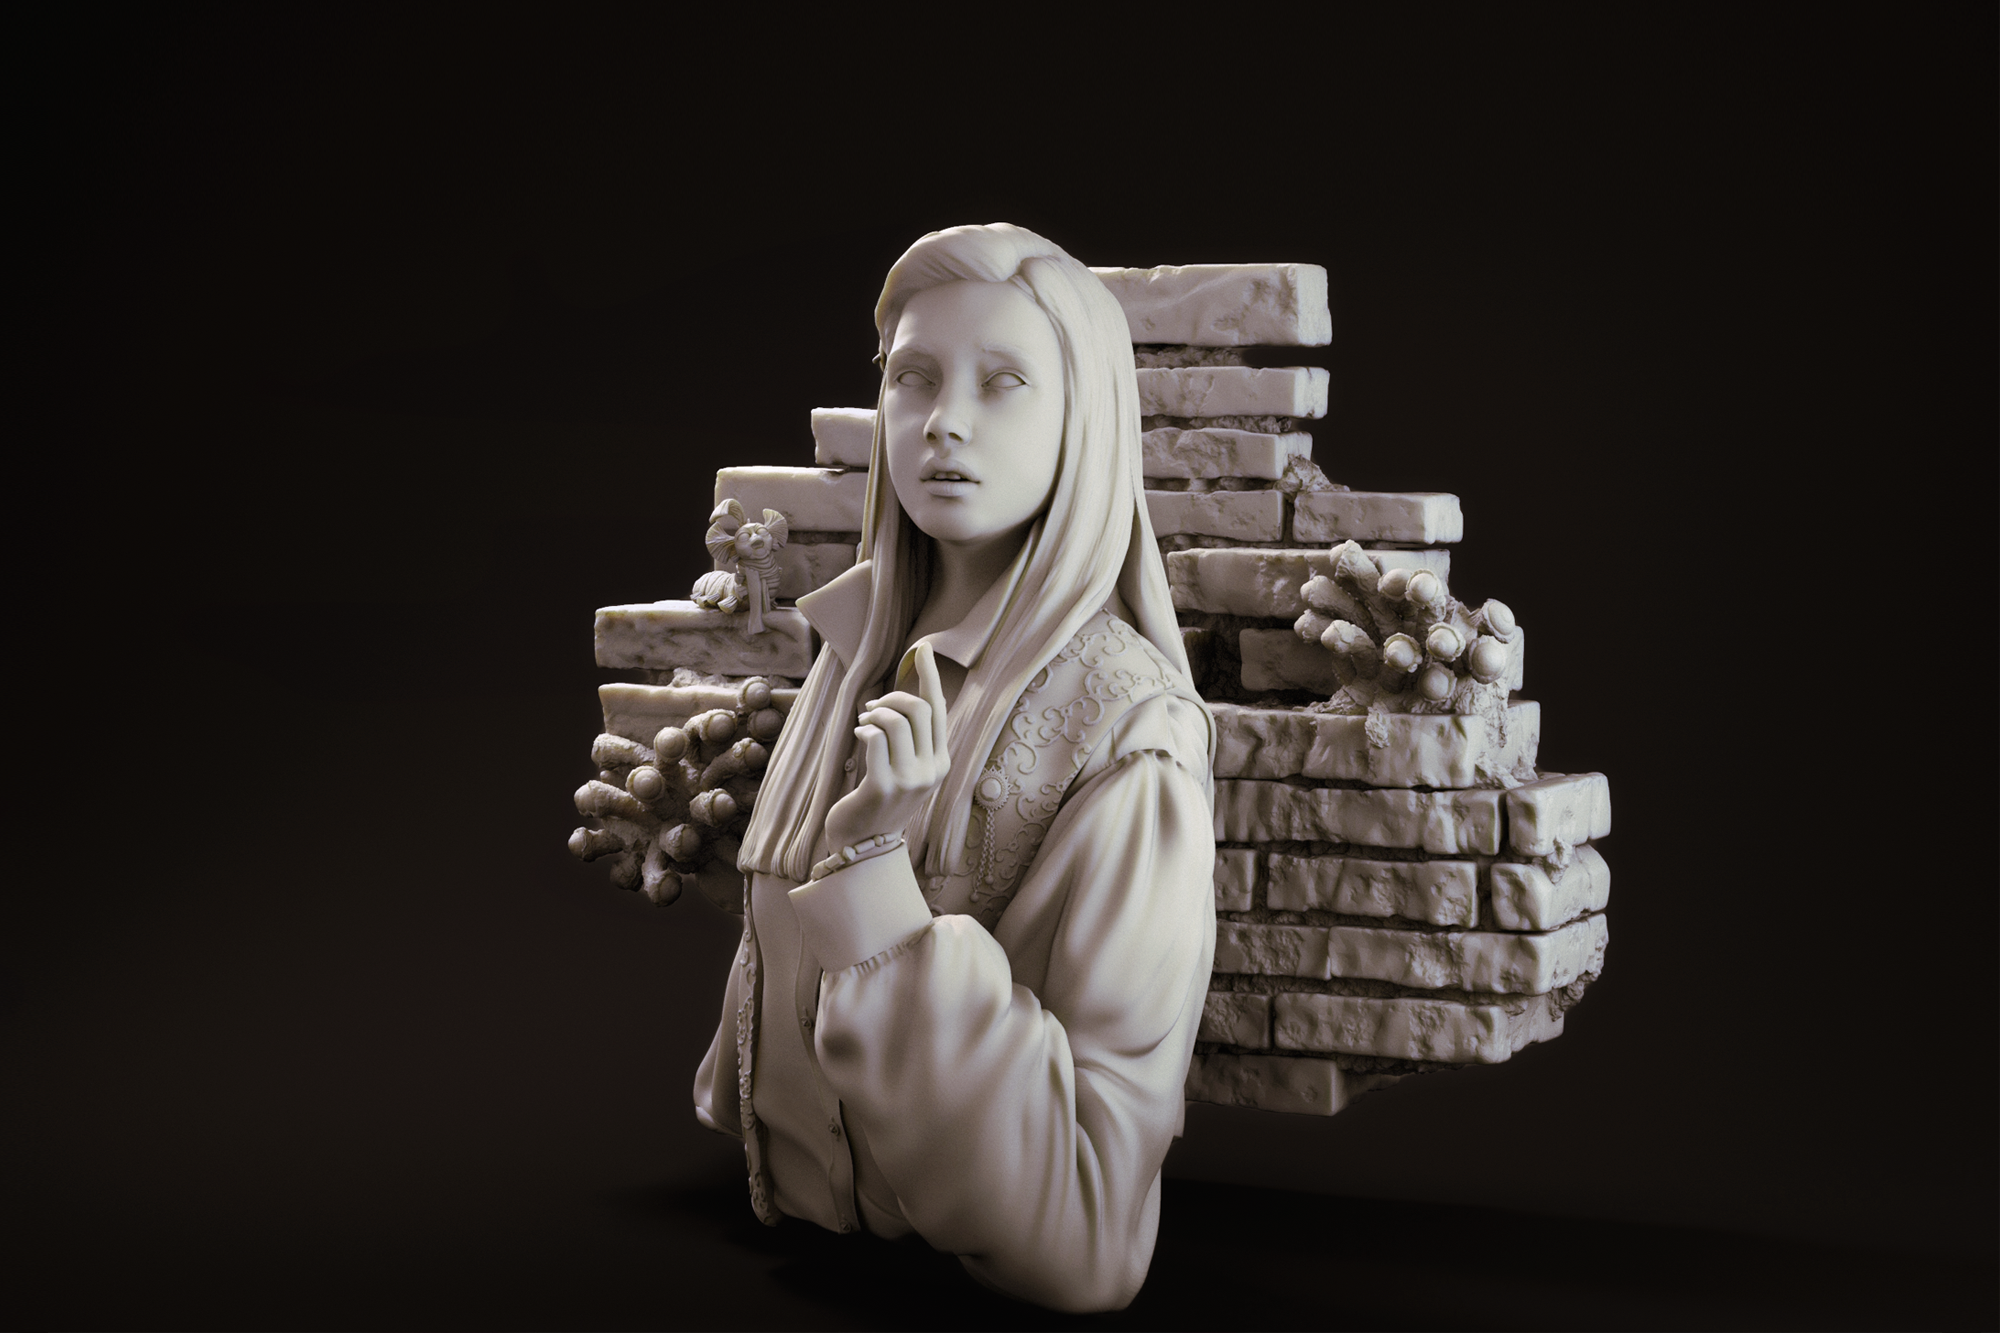 Sarah form LABYRINTH miniature